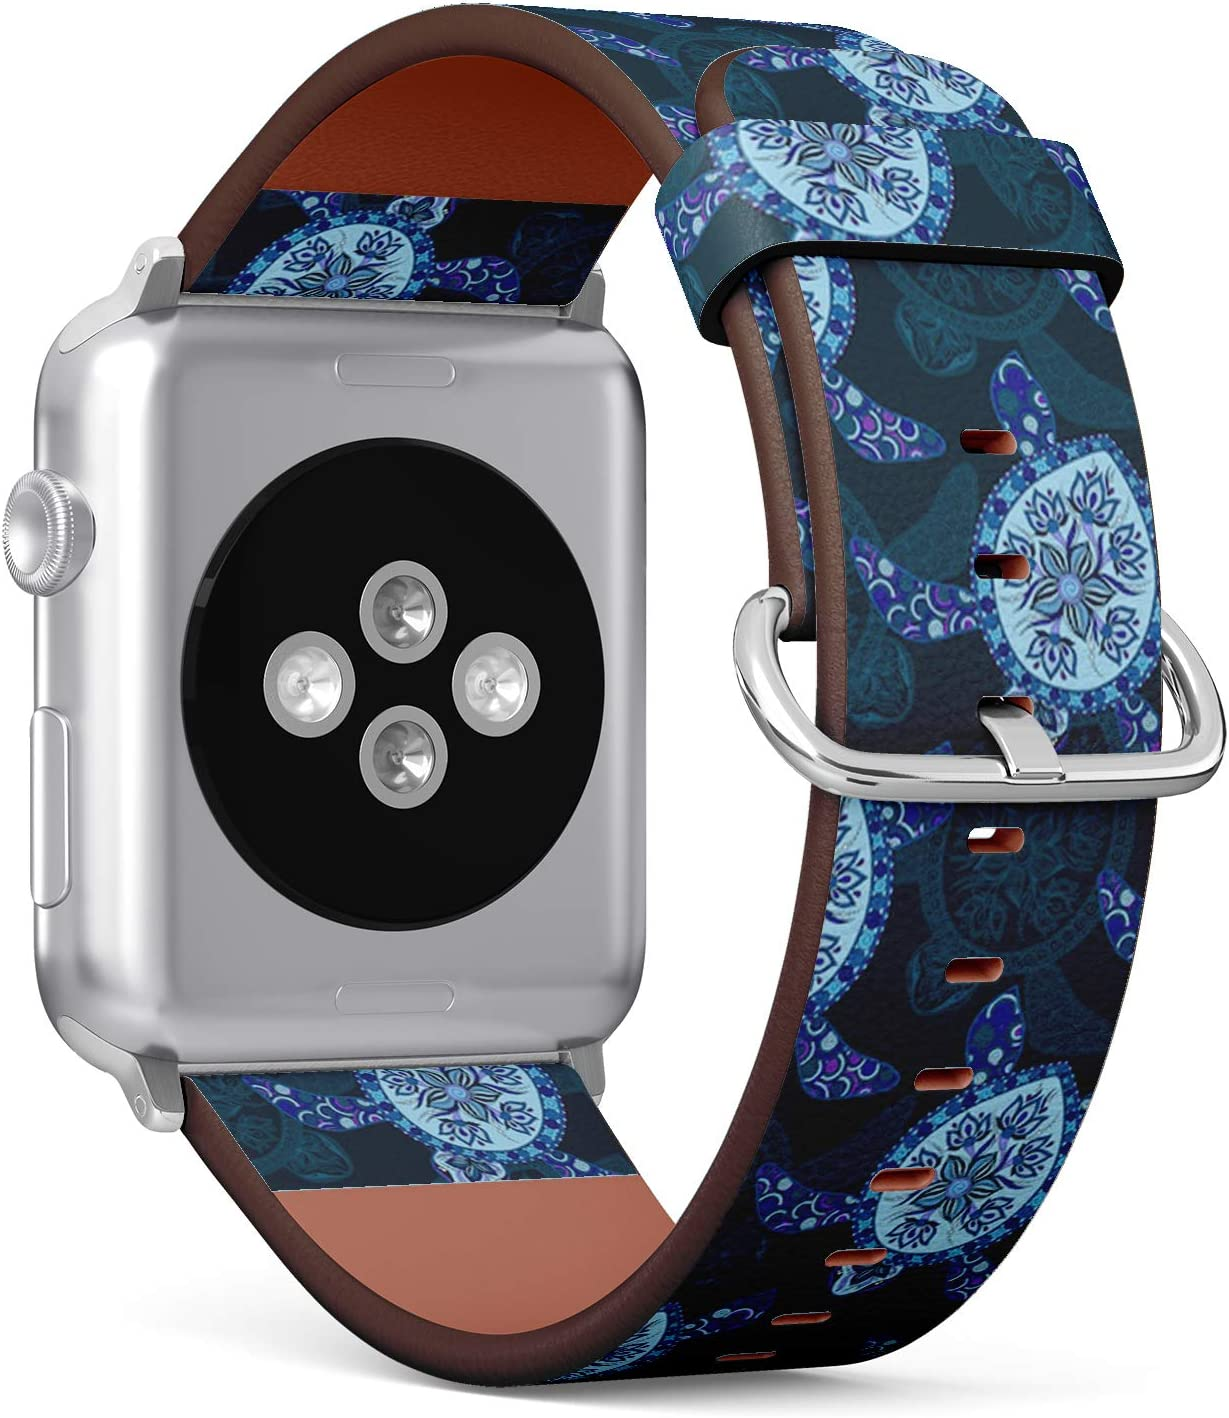 Compatible with Small Apple Watch 38mm & 40mm (Series 5, 4, 3, 2, 1) Leather Watch Wrist Band Strap Bracelet with Stainless Steel Clasp and Adapters (Turtles Can Be)